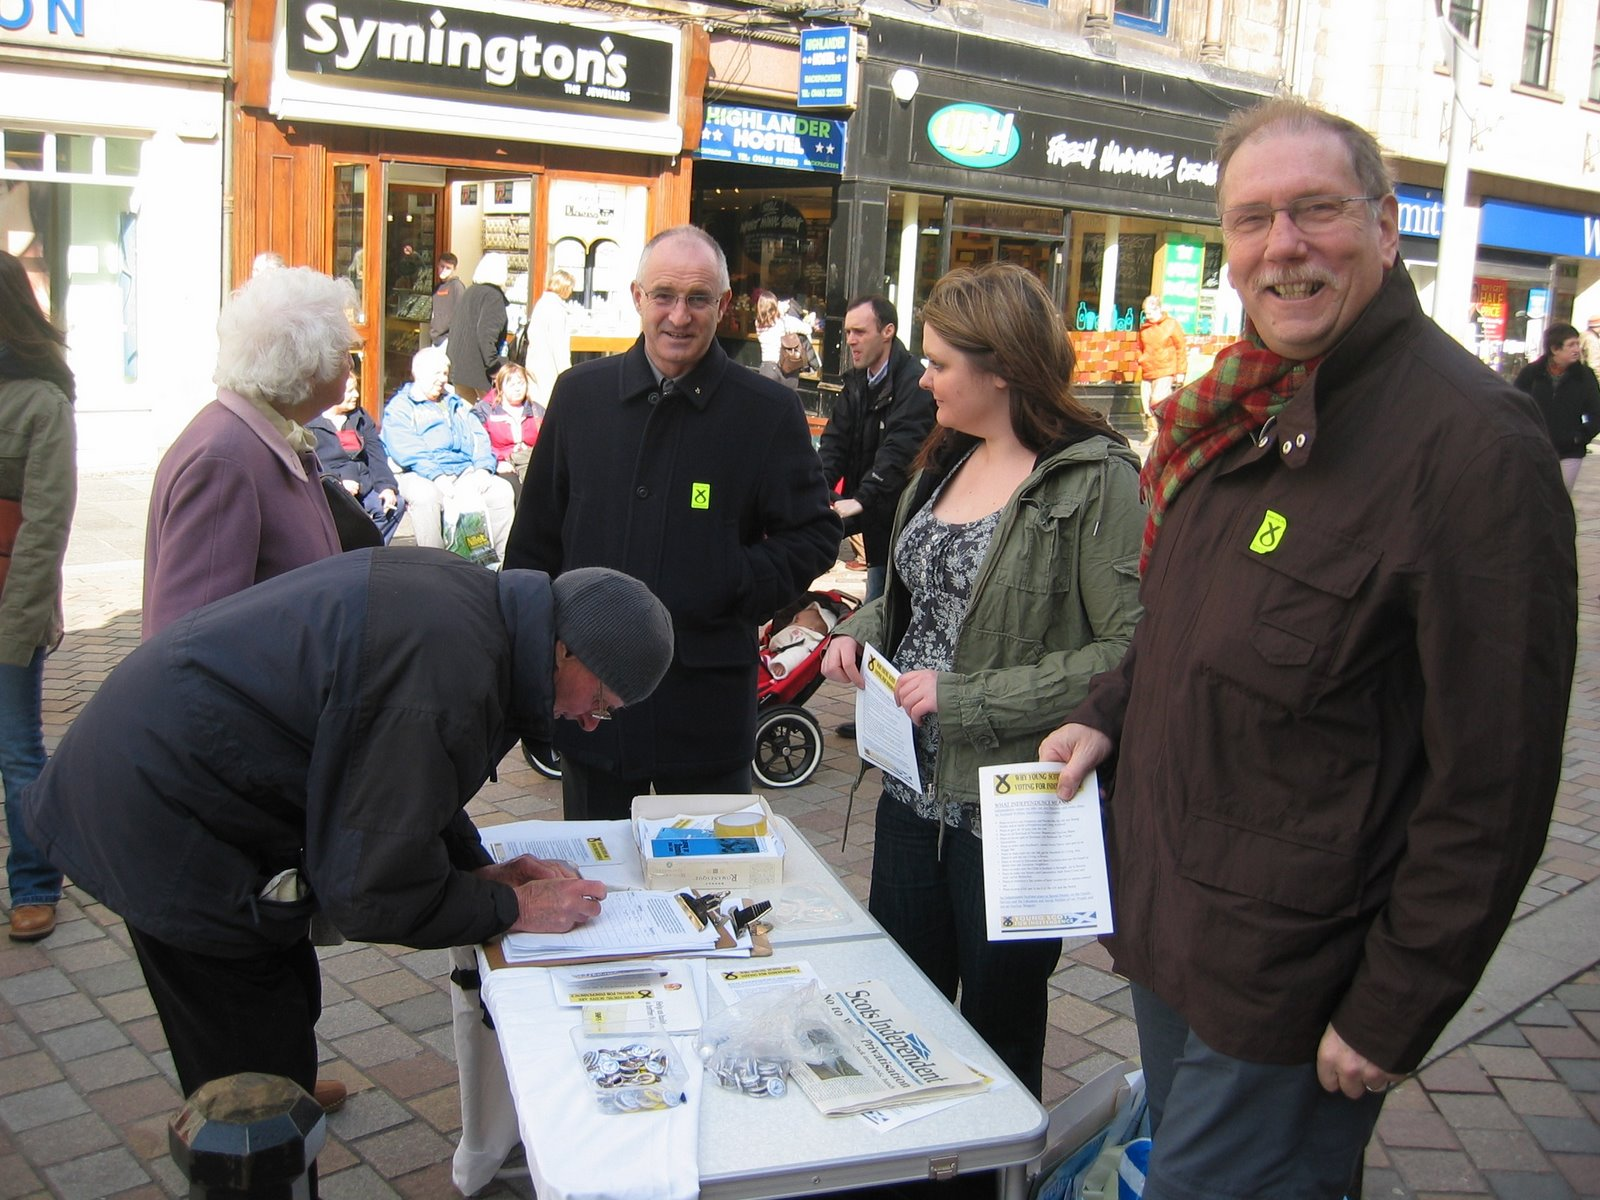 [Campaigning+with+YSI+Inverness+High+St.+Sat+28-03-08]